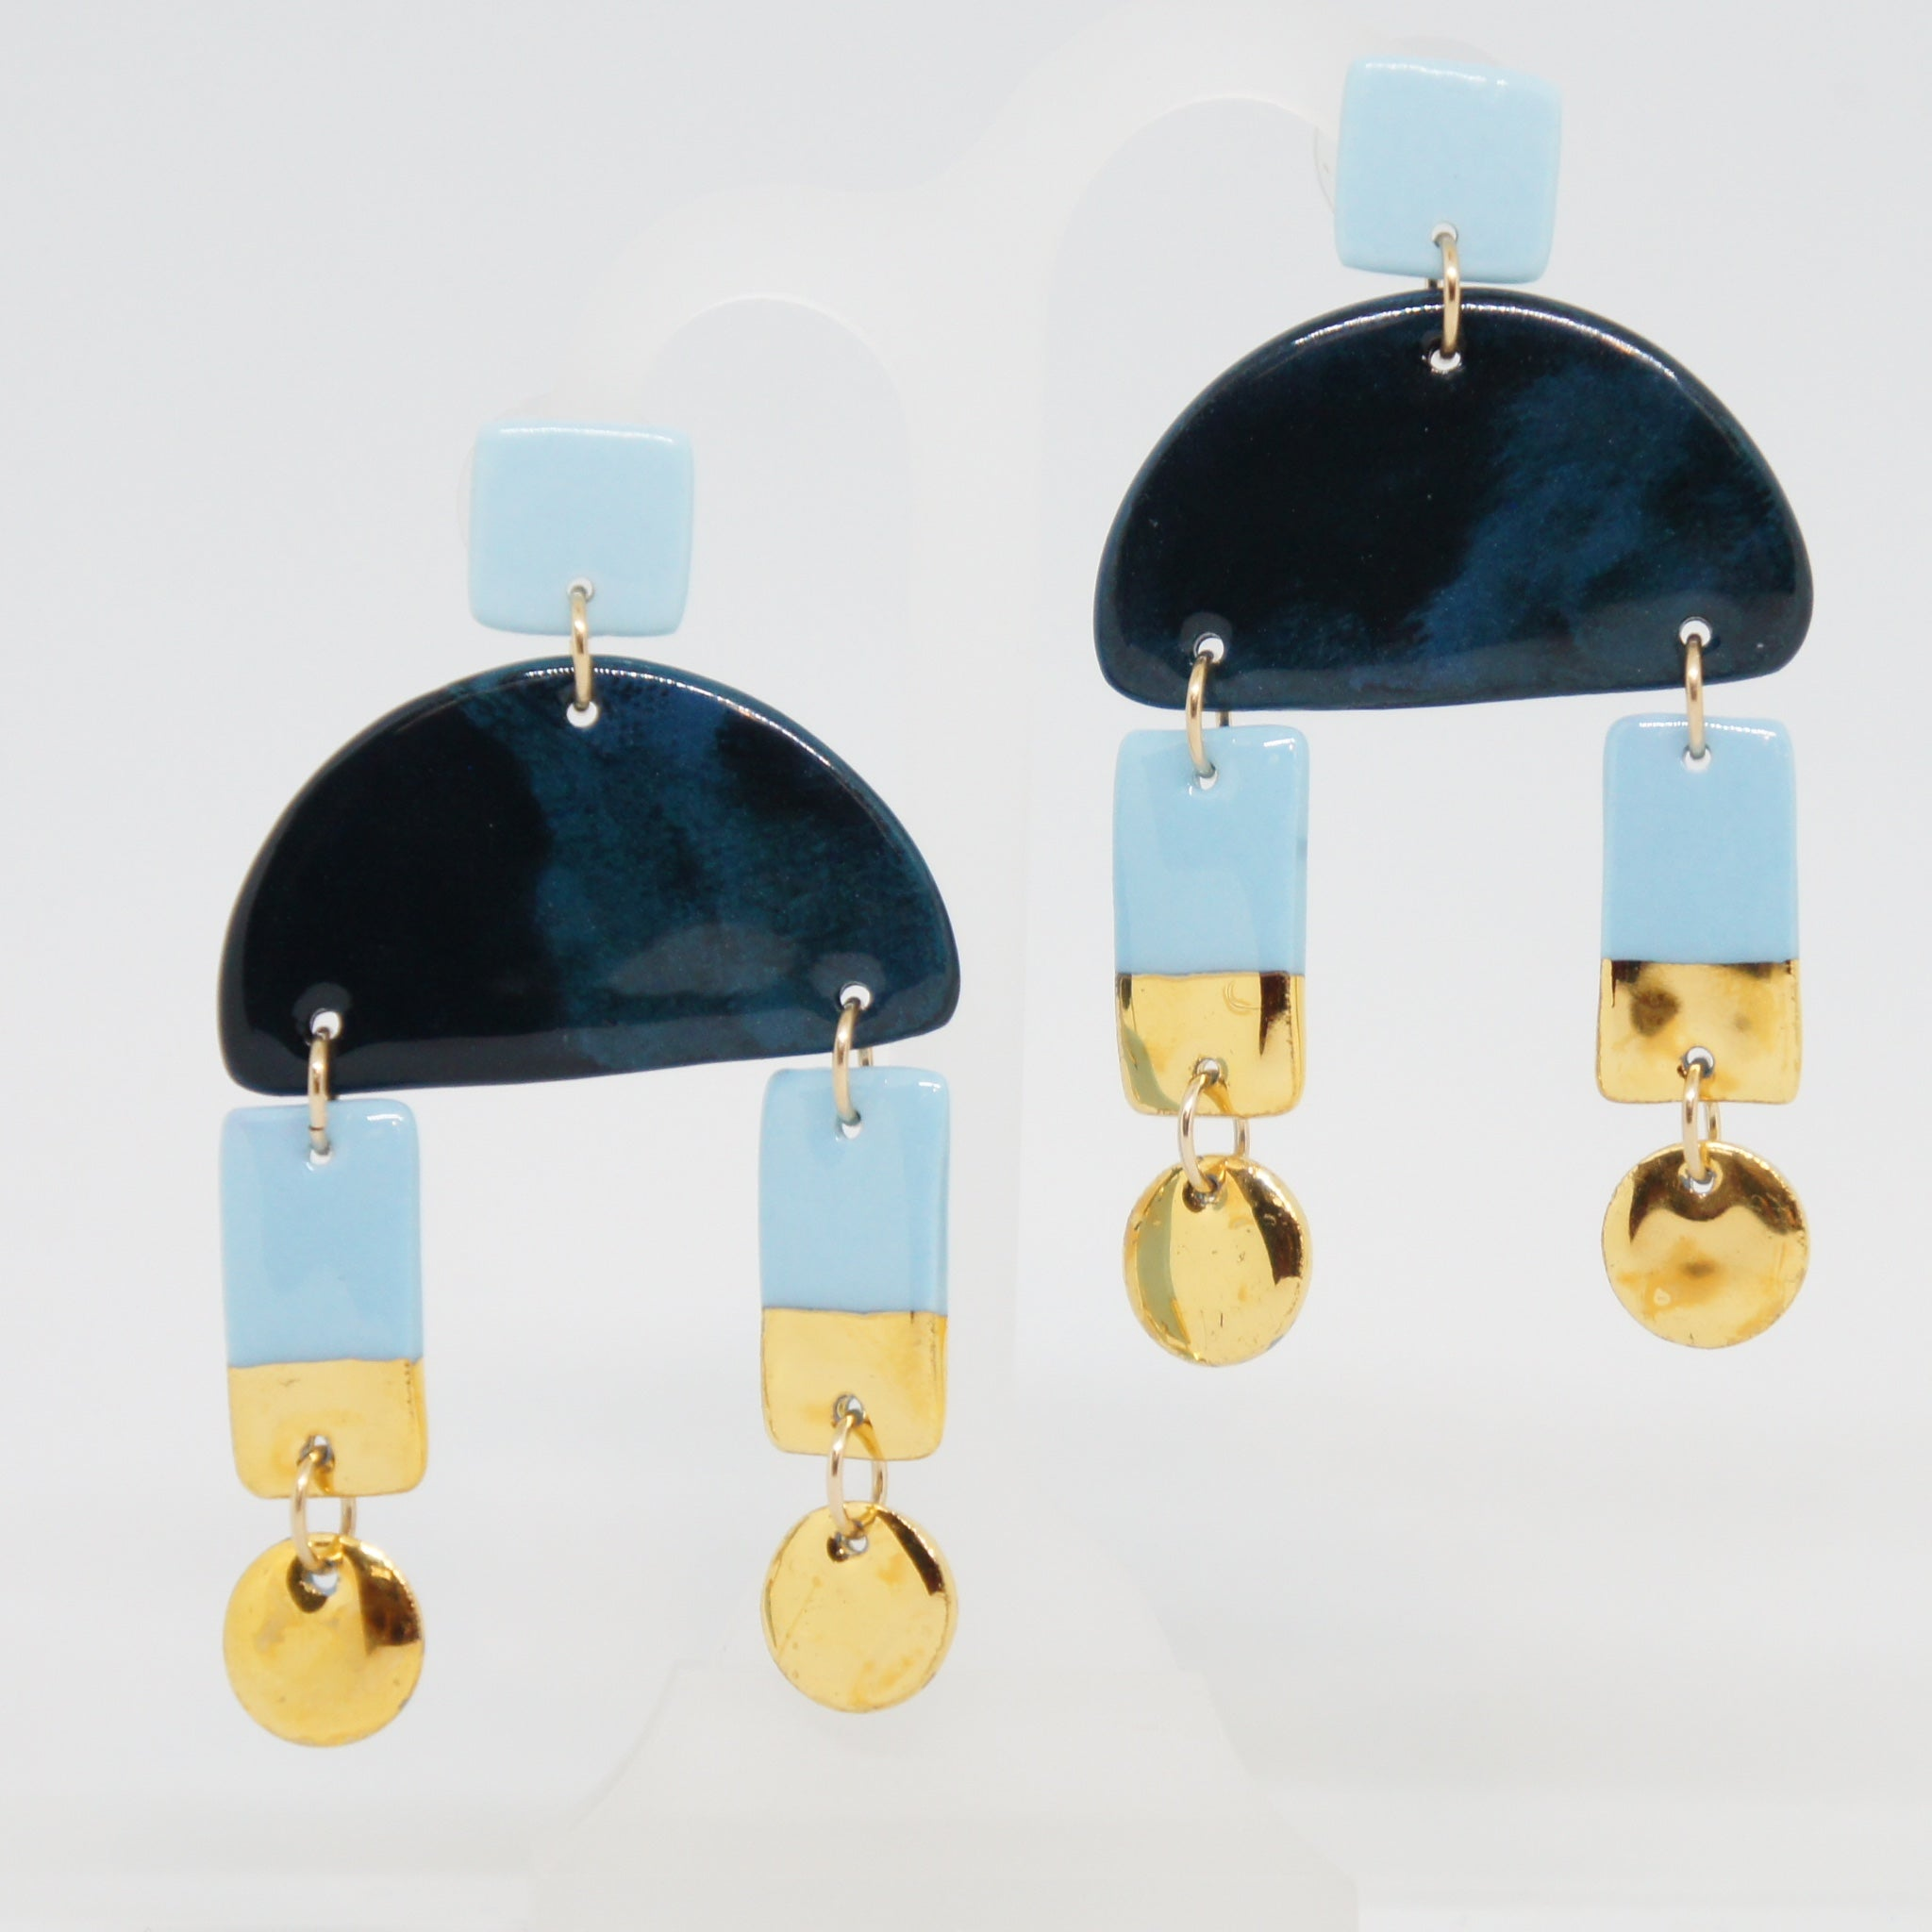 Rozenthal  Porcelain Earrings